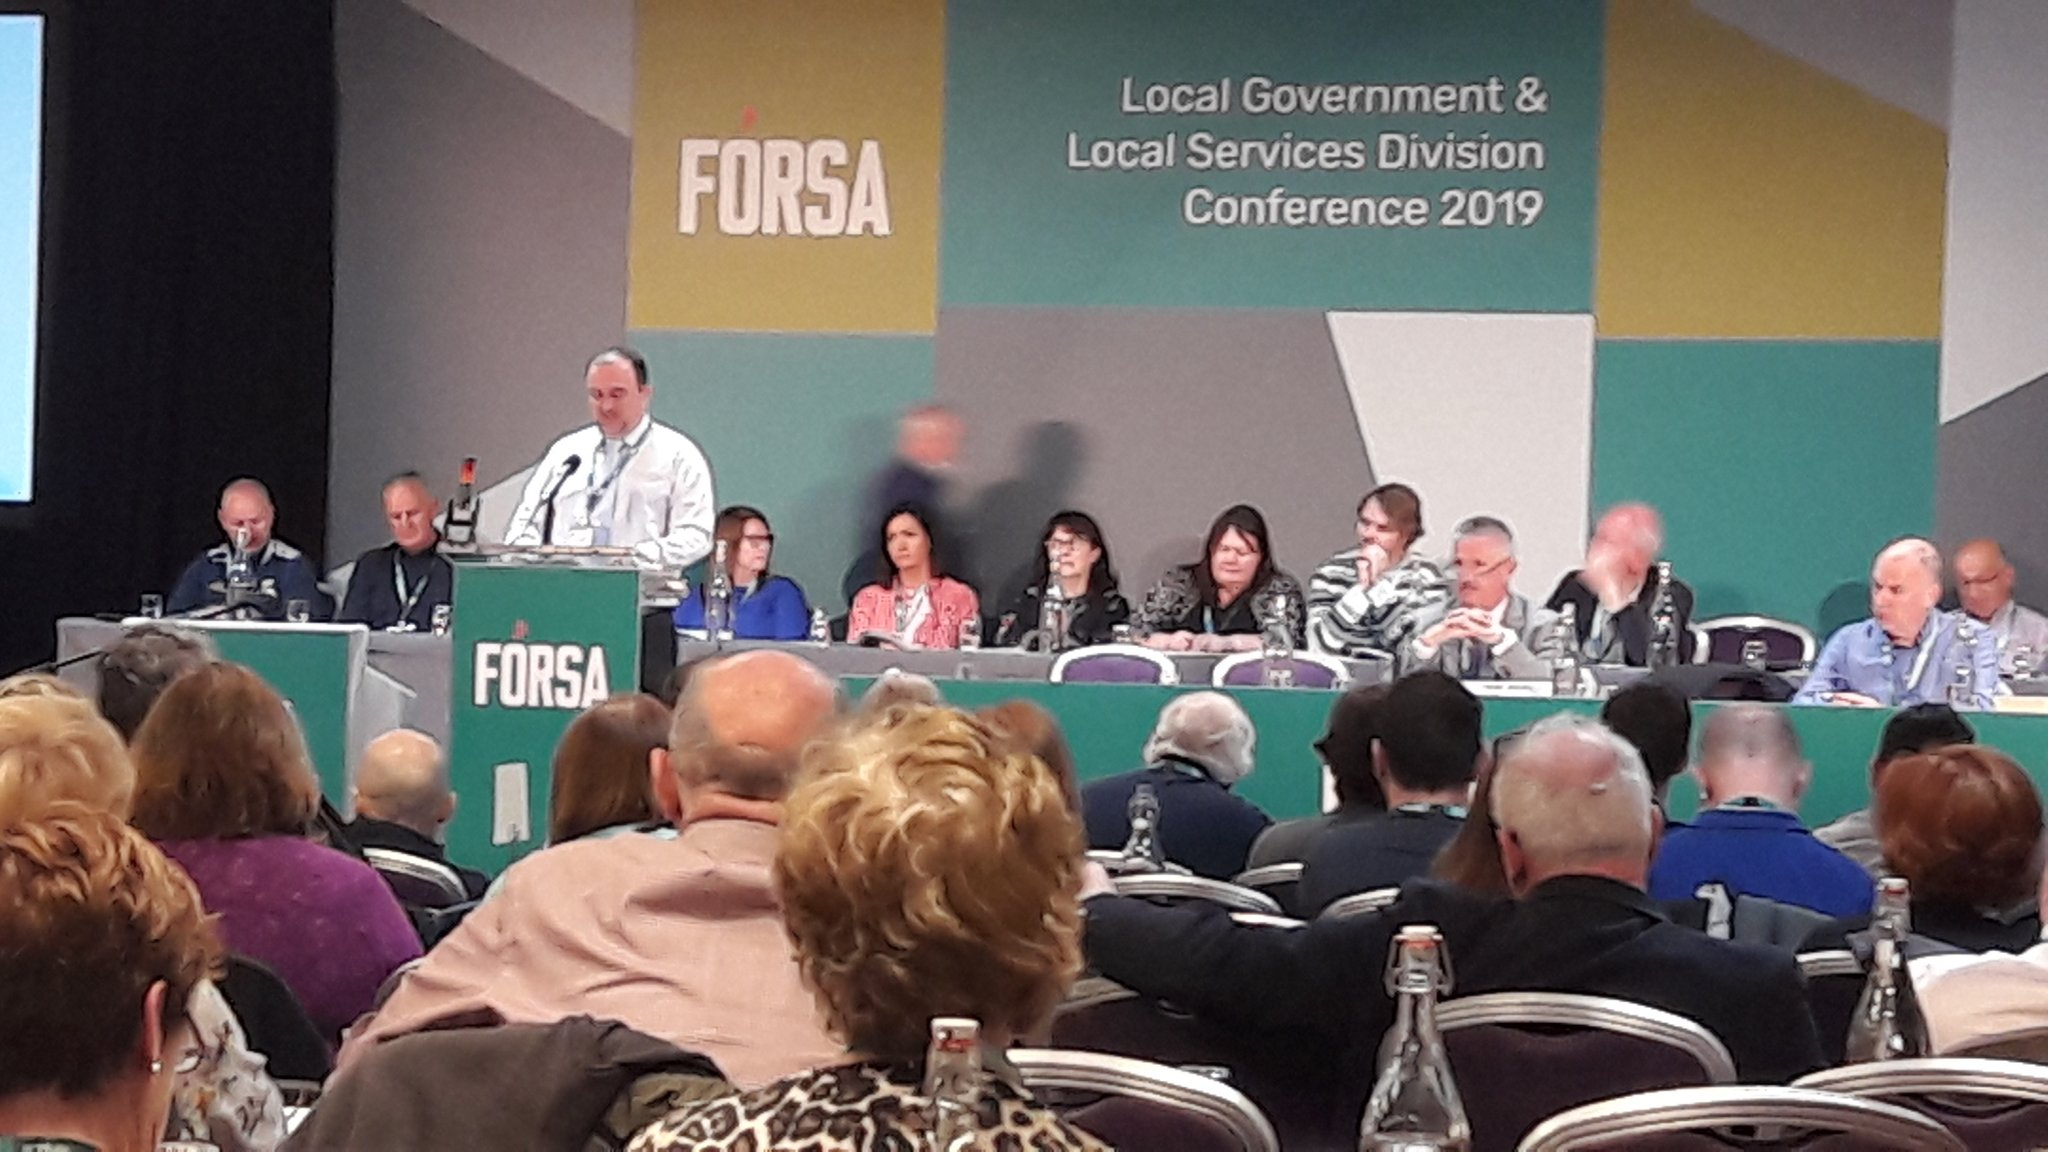 Fórsa Proposes Citizens Assembly For Local Government